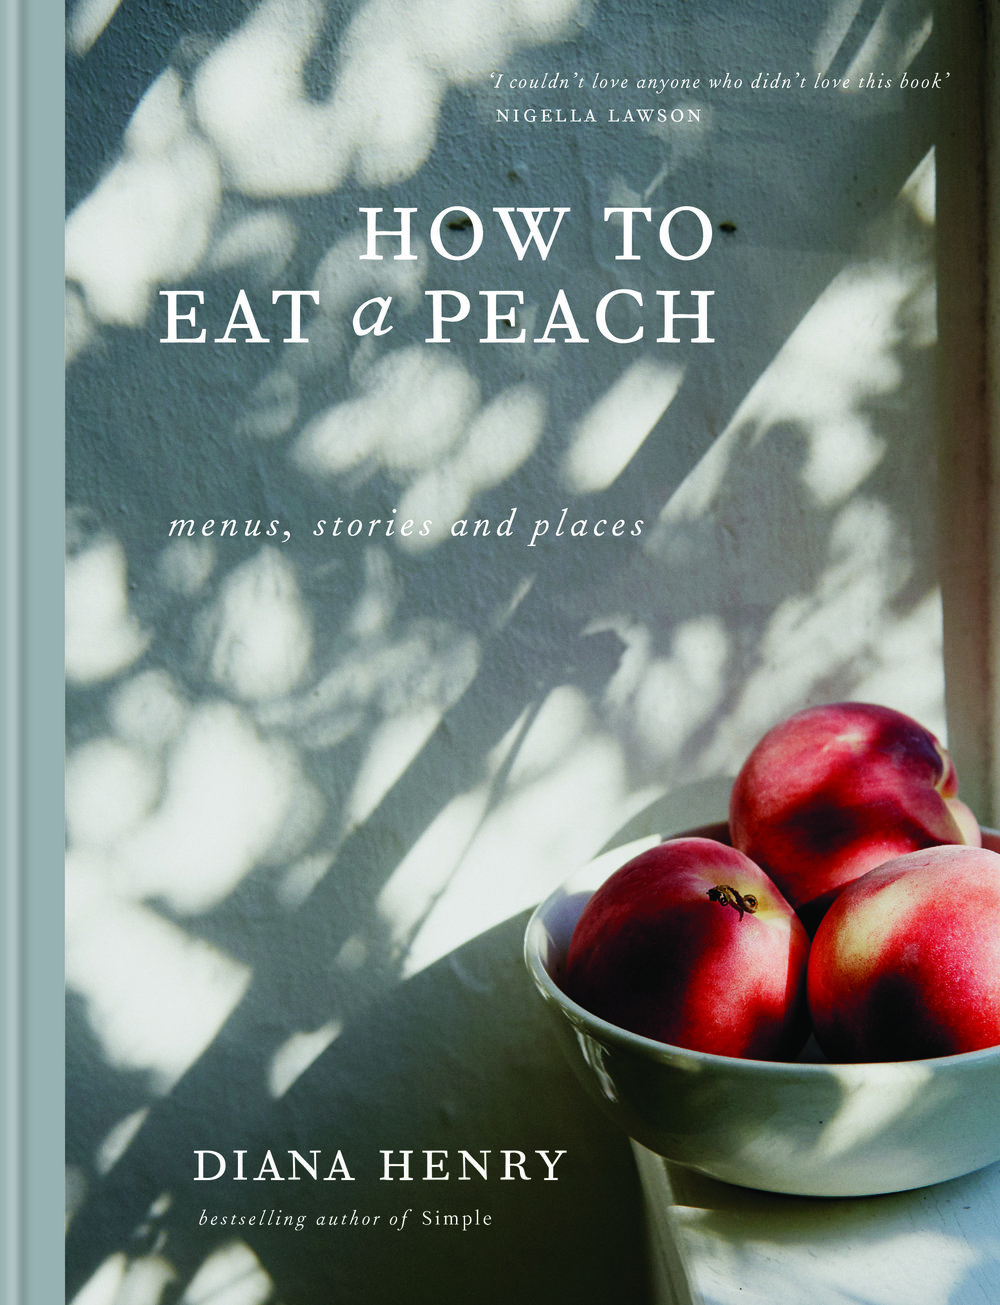 How to Eat a Peach book photo 2.jpg